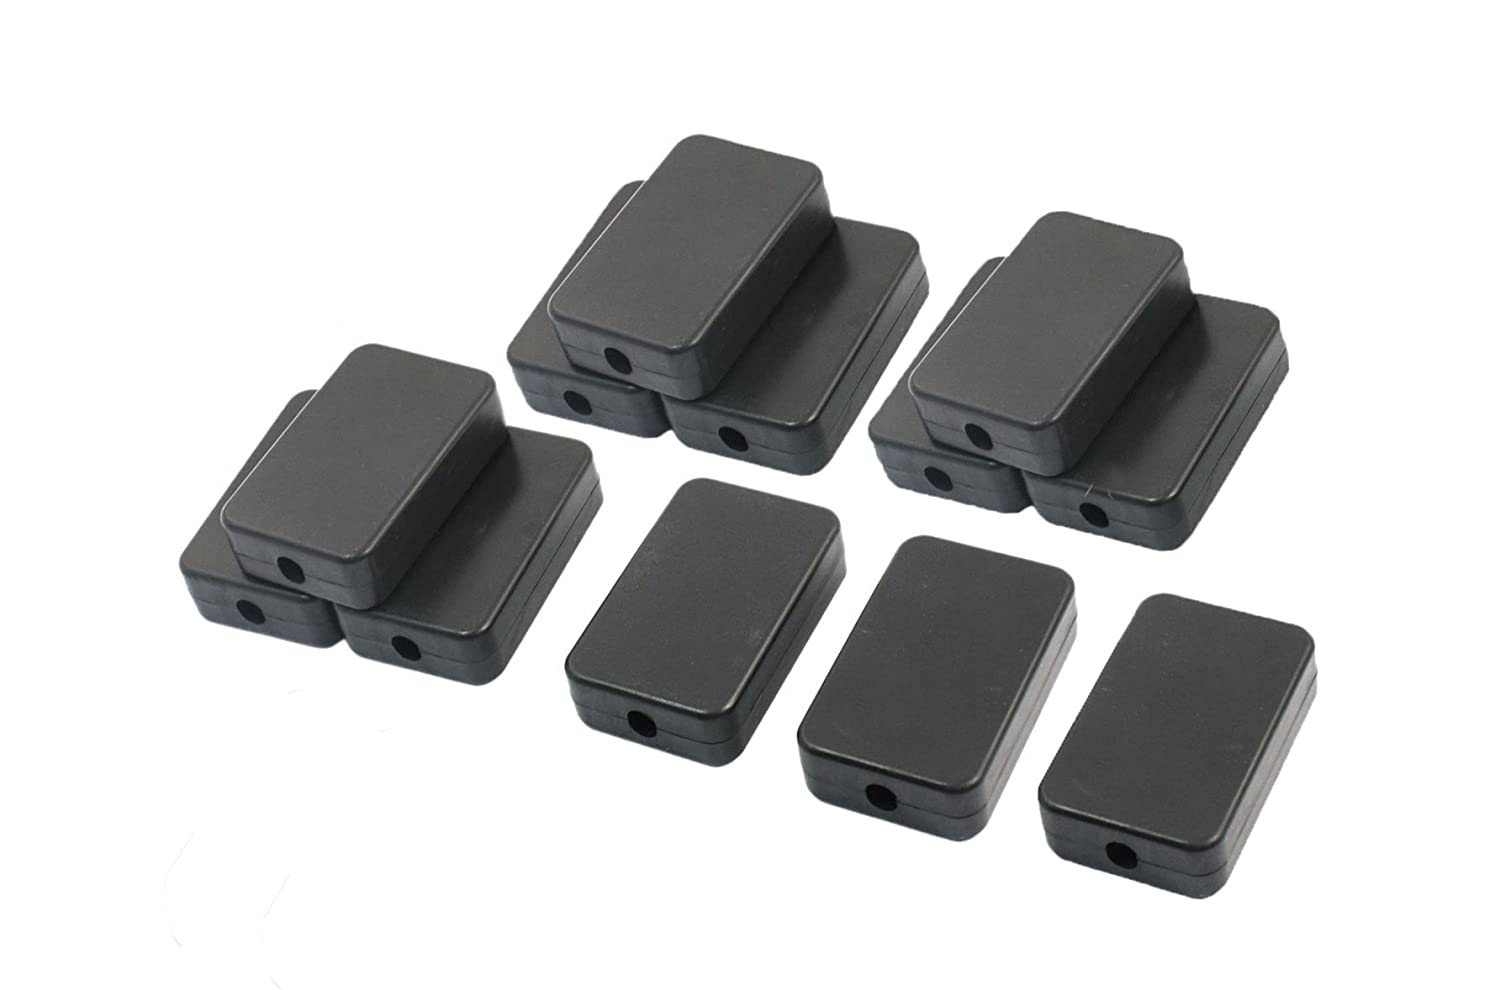 YXQ 55x35x15mm Junction Box w Hole Cover Small Waterproof Electric Project Case Black Plastic 12 Pack